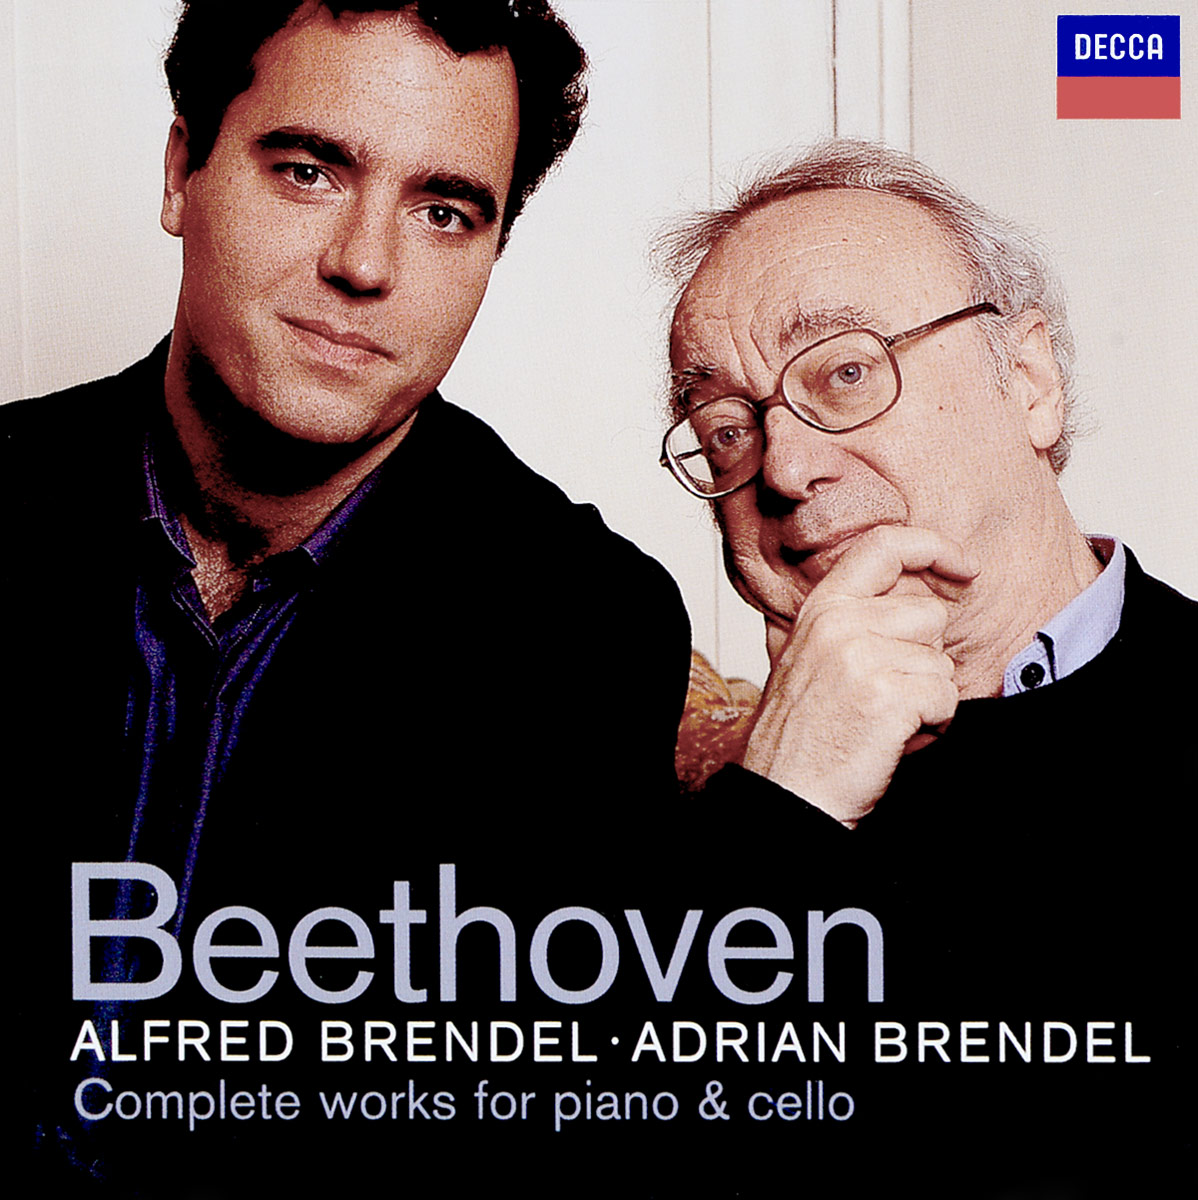 Альфред Брендель Alfred Brendel, Adrian Brendel. Beethoven: Complete Works for Piano & Cello (2 CD)